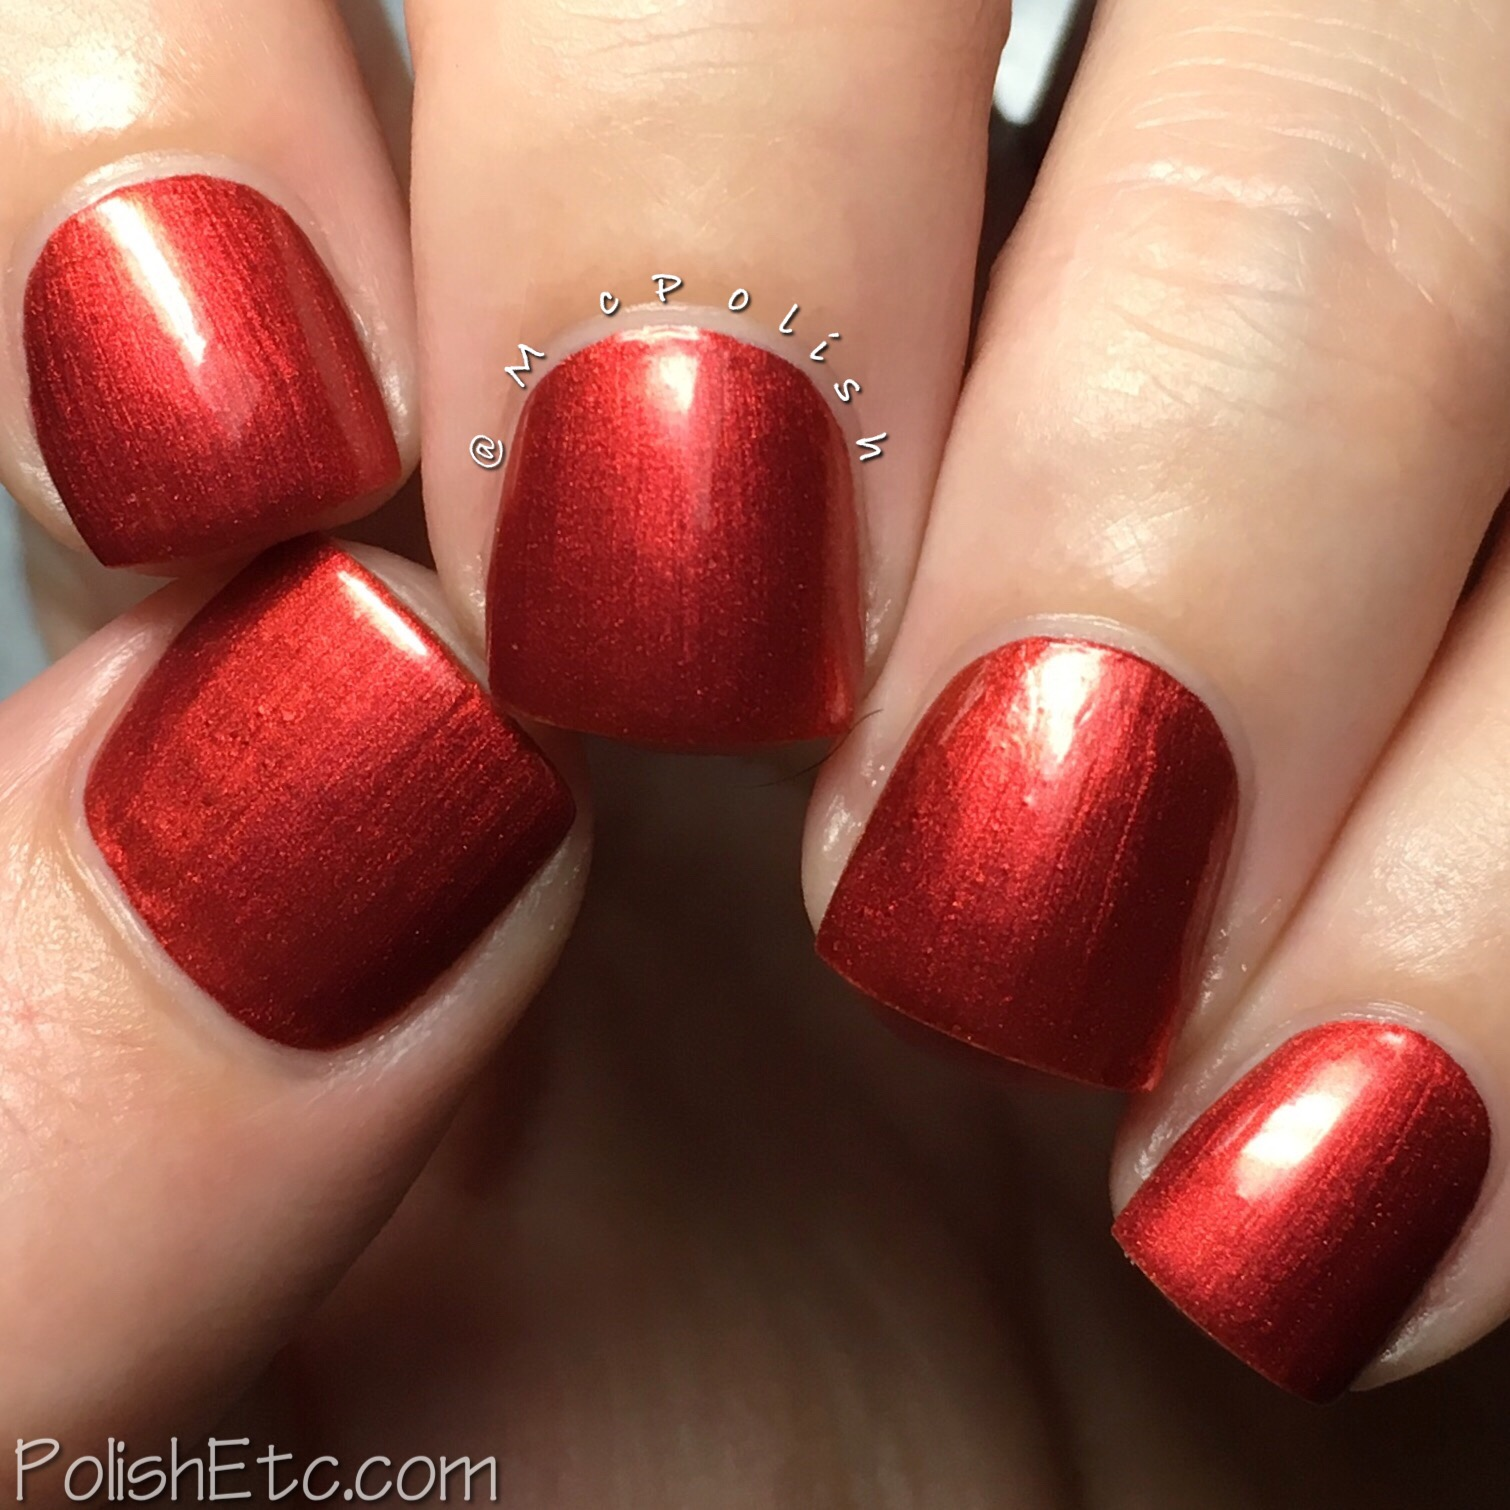 How To End A Letter Polish By Aaron Allston $525+ Nine Zero Lacquer Men Of